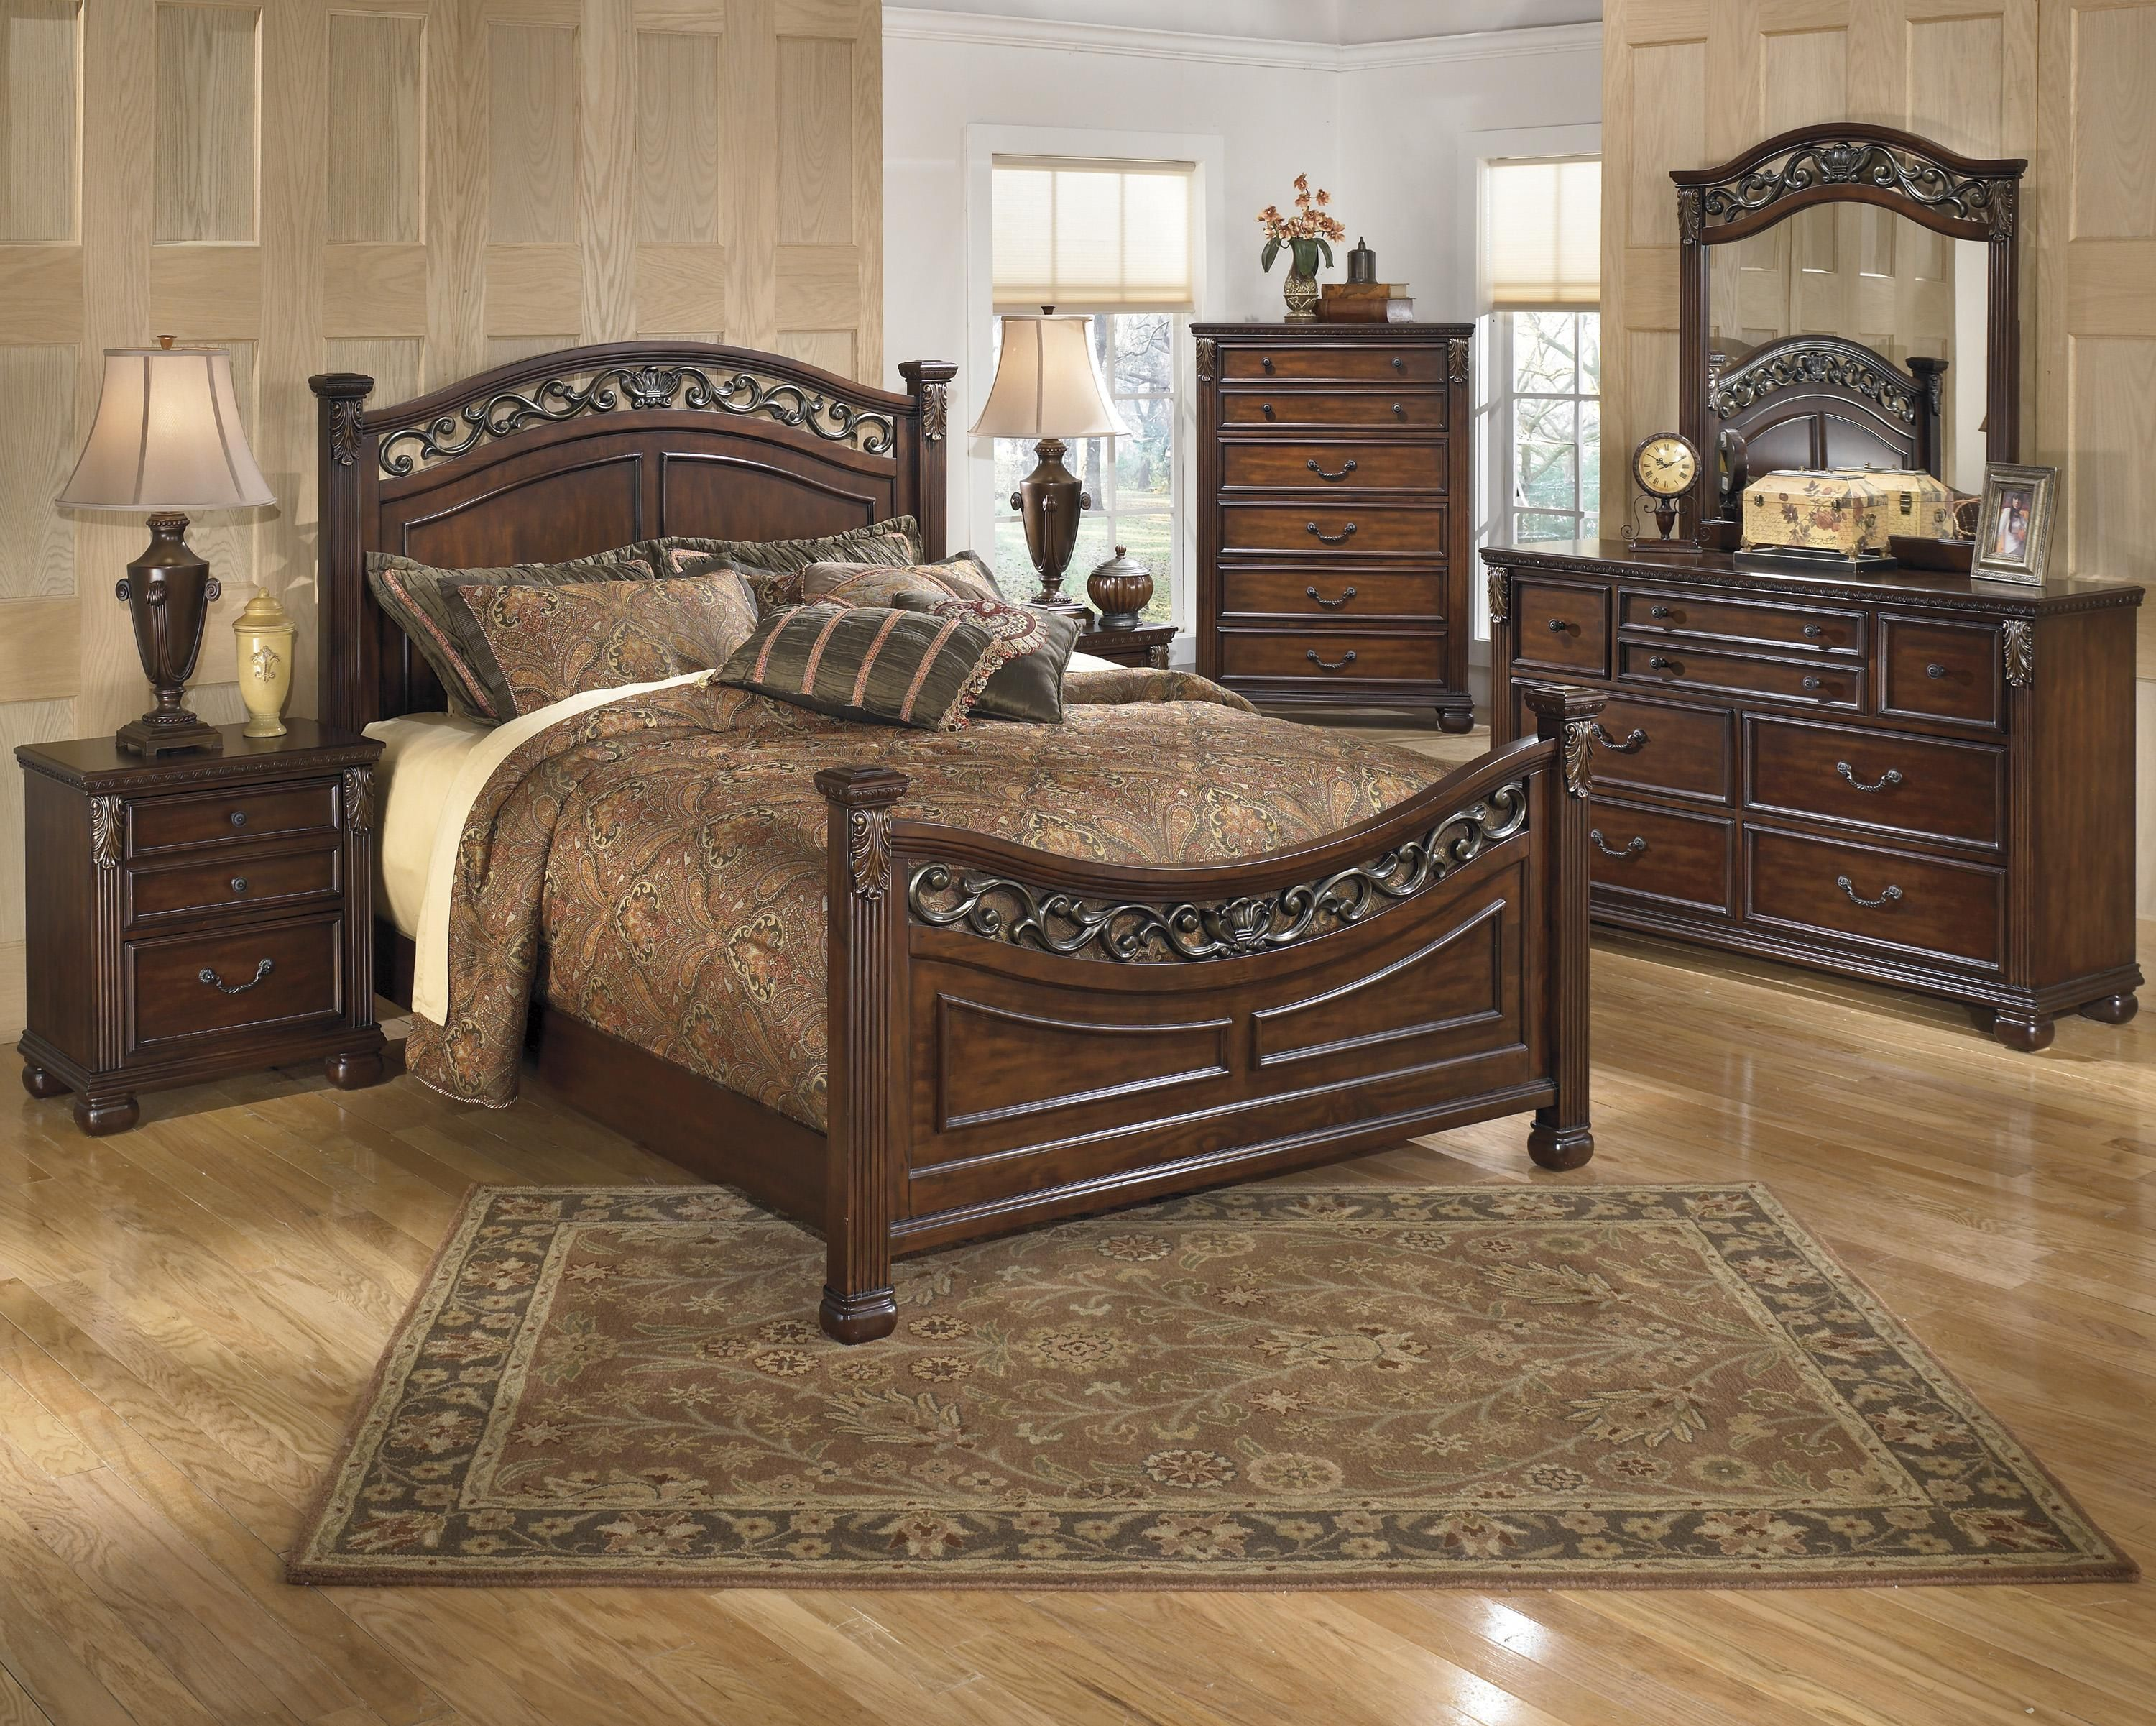 Signature Design by Ashley Leahlyn Queen Bedroom Group - Furniture ...